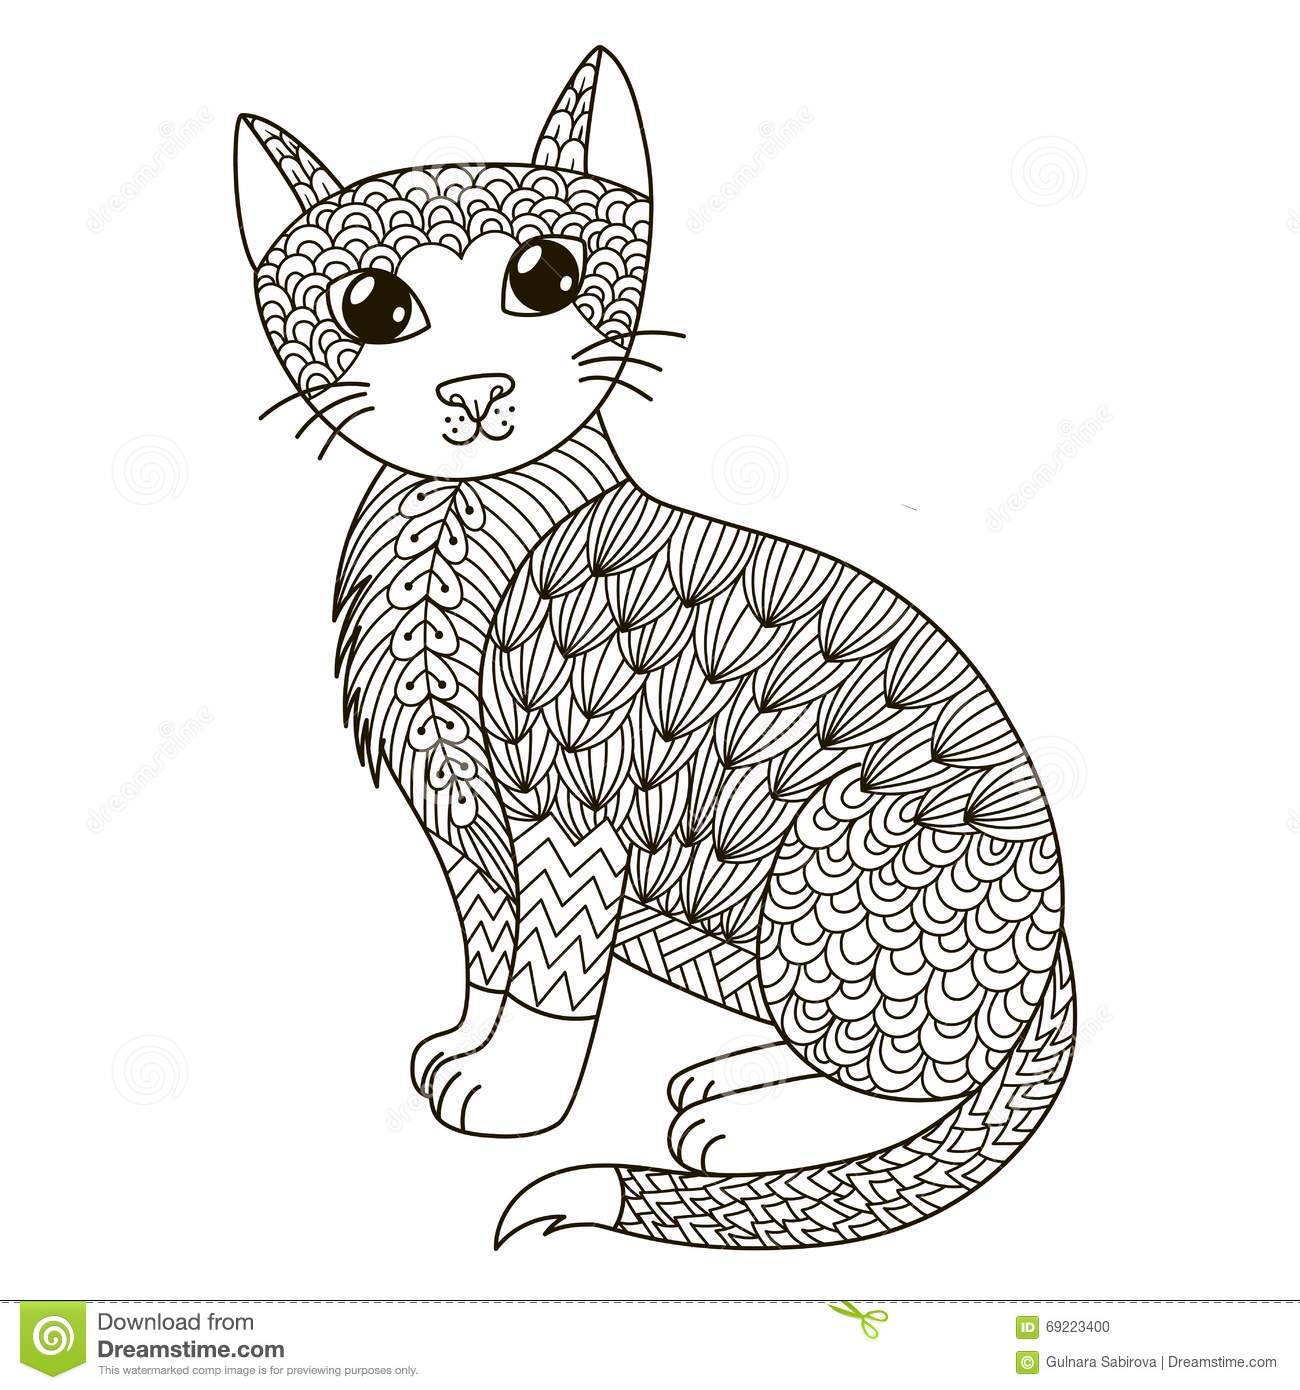 Zen cat coloring page - Zentangle Cat For Coloring Page Shirt Design Logo Tattoo And Decoration